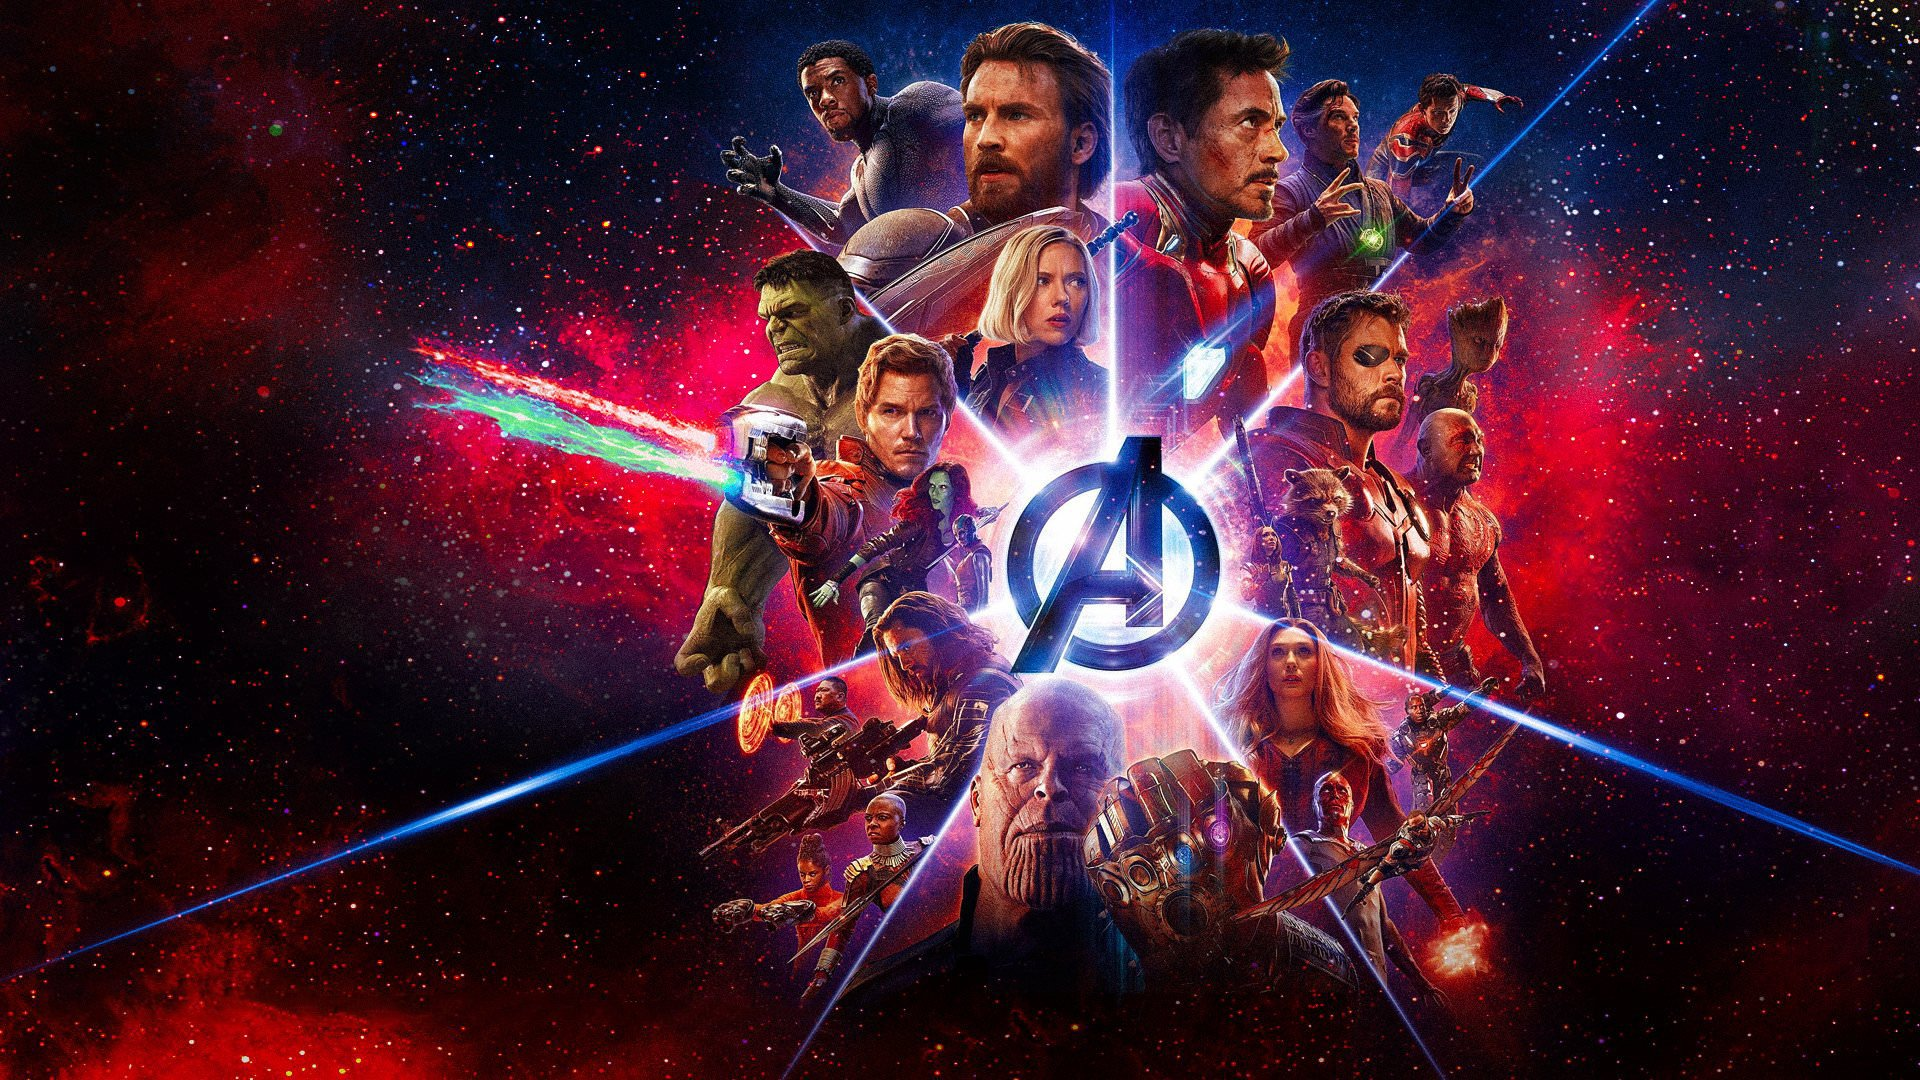 Avengers Infinity War Hd Wallpaper Background Image 1920x1080